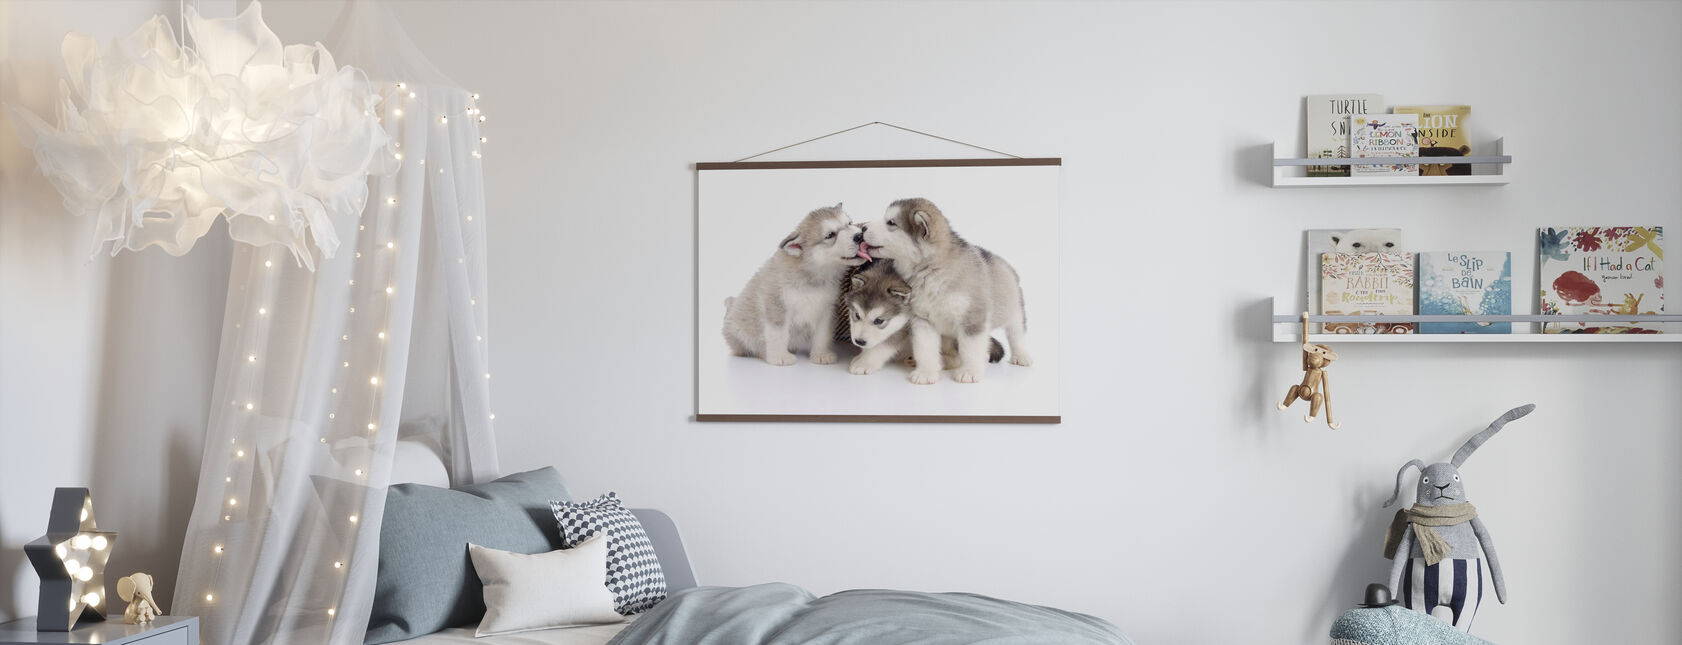 Friendly Puppies - Poster - Kids Room